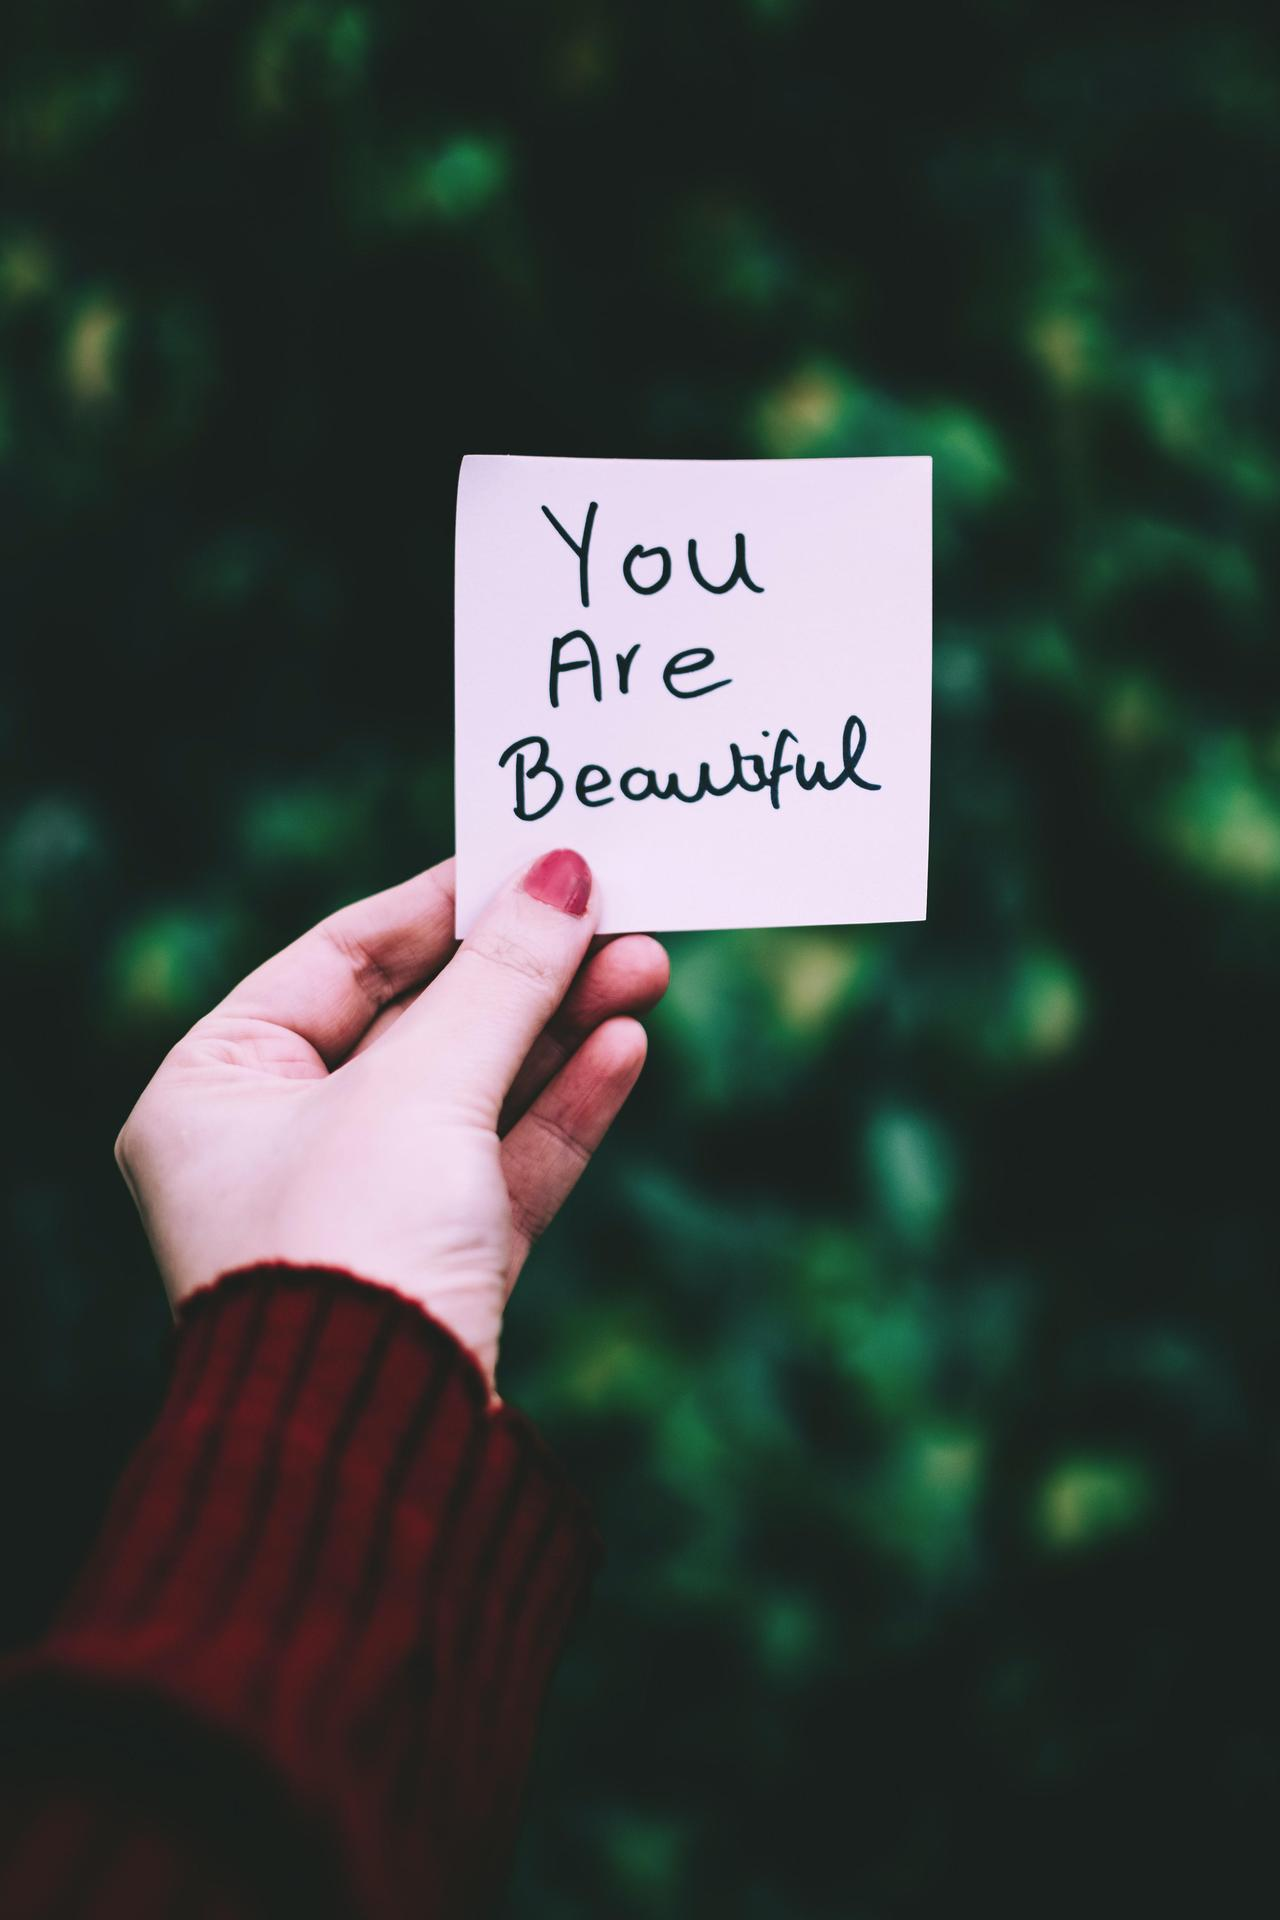 You are beautiful message